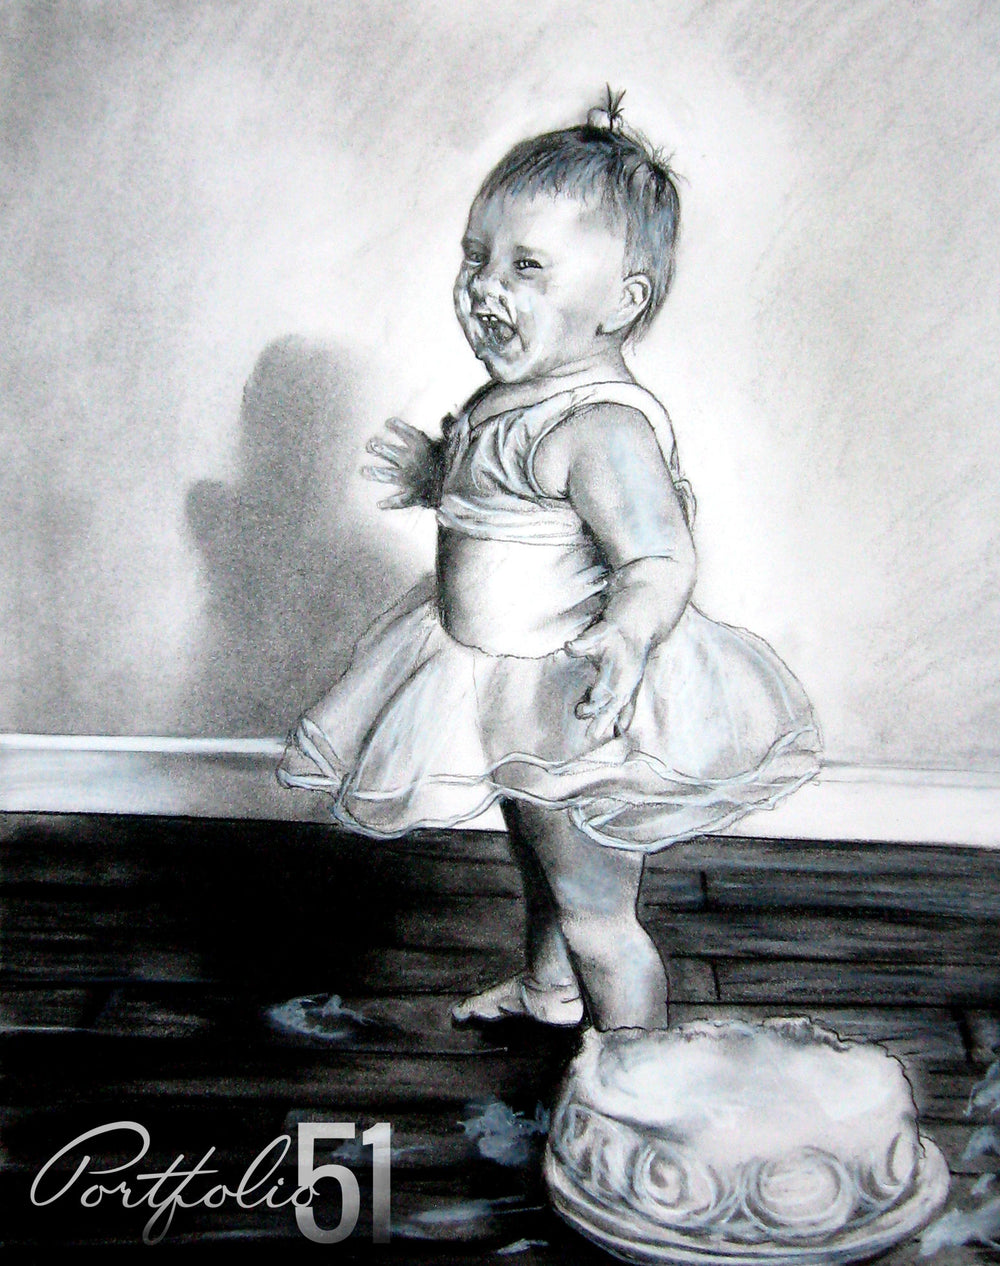 Portfolio 51 Baby Birthday Drawing